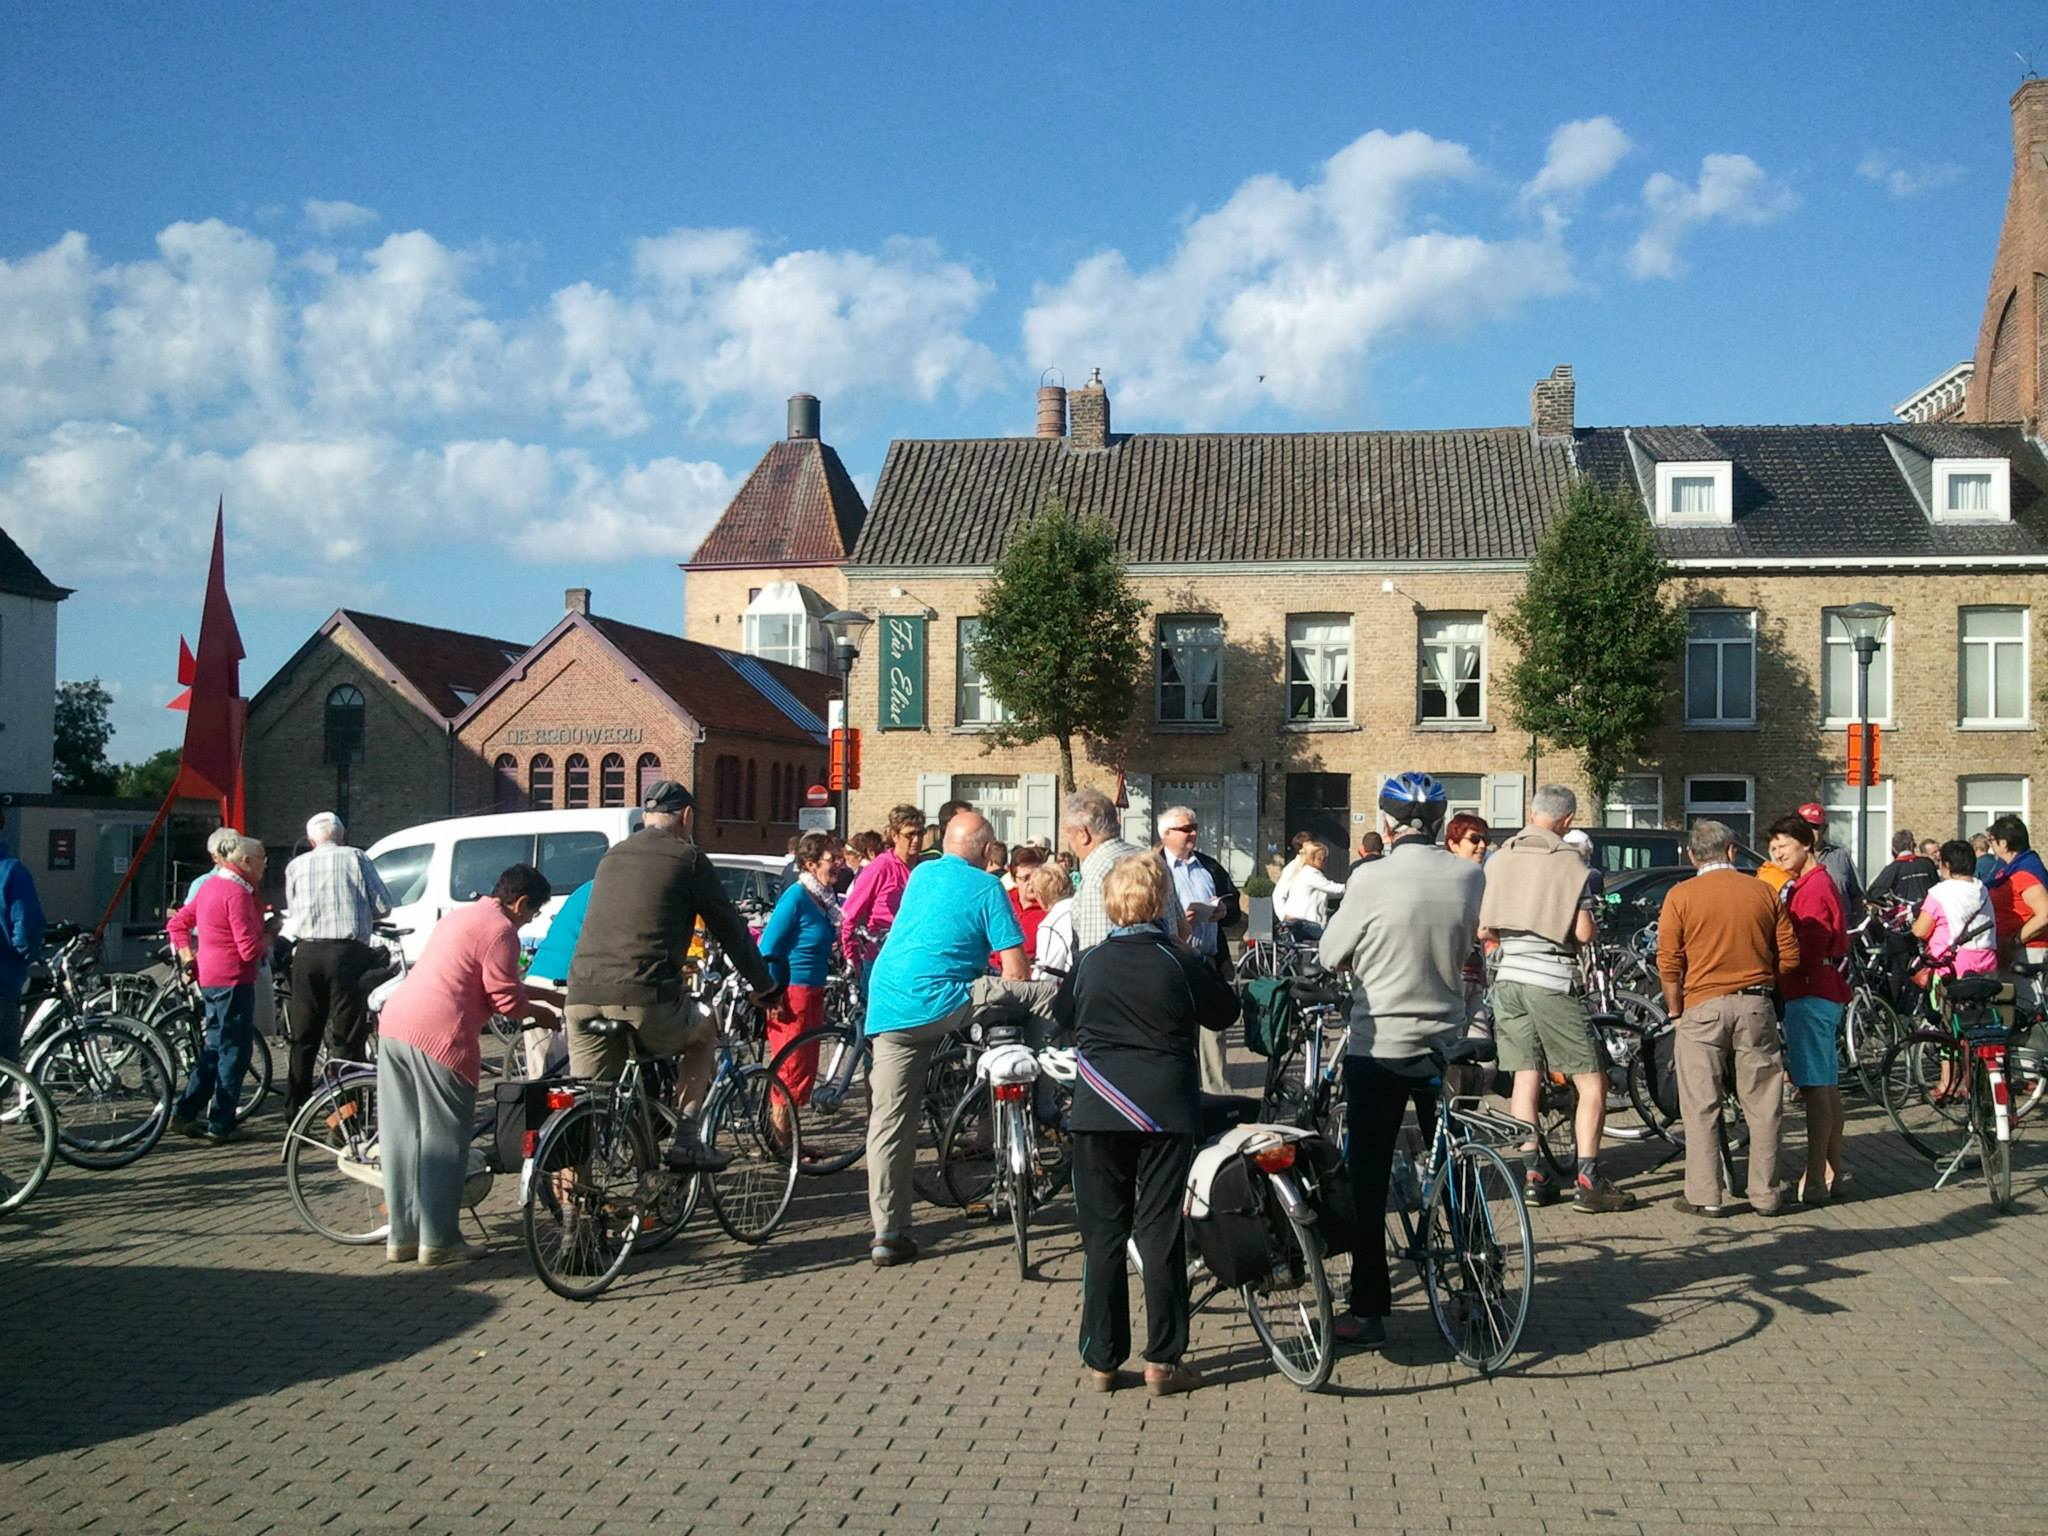 Cycling in Koekelare